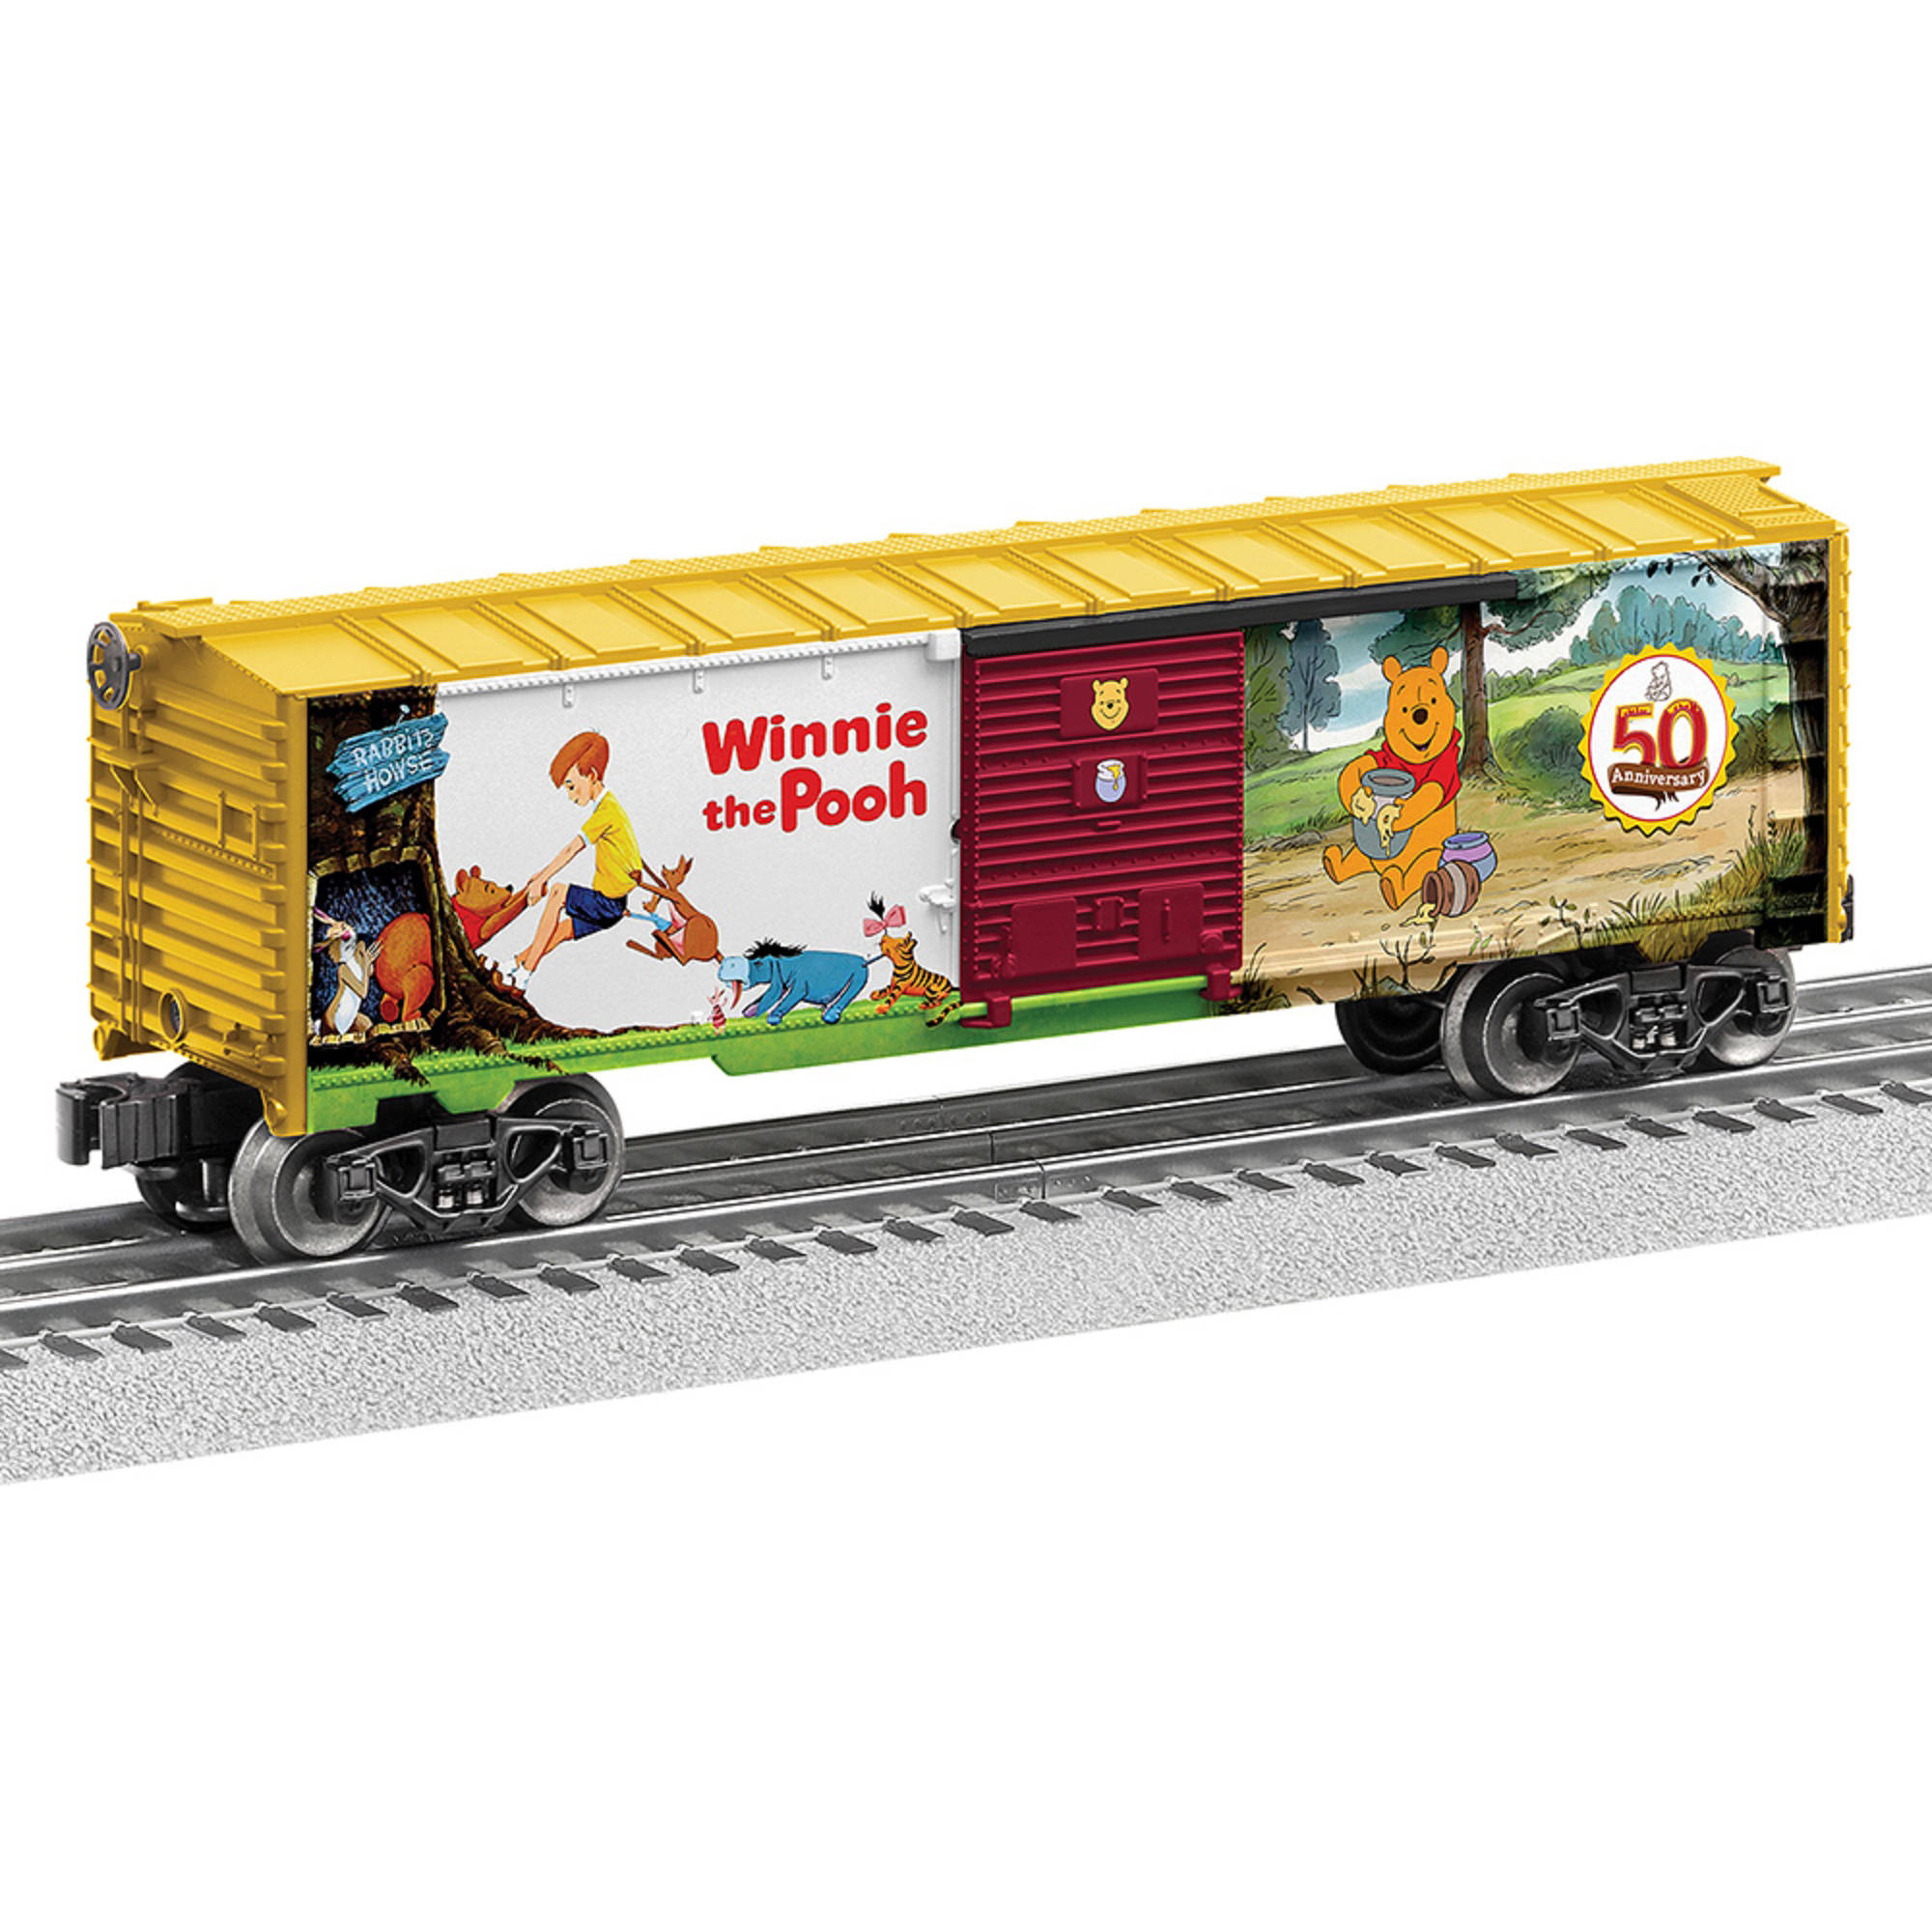 Lionel Disney Winnie the Pooh Boxcar by Lionel Trains